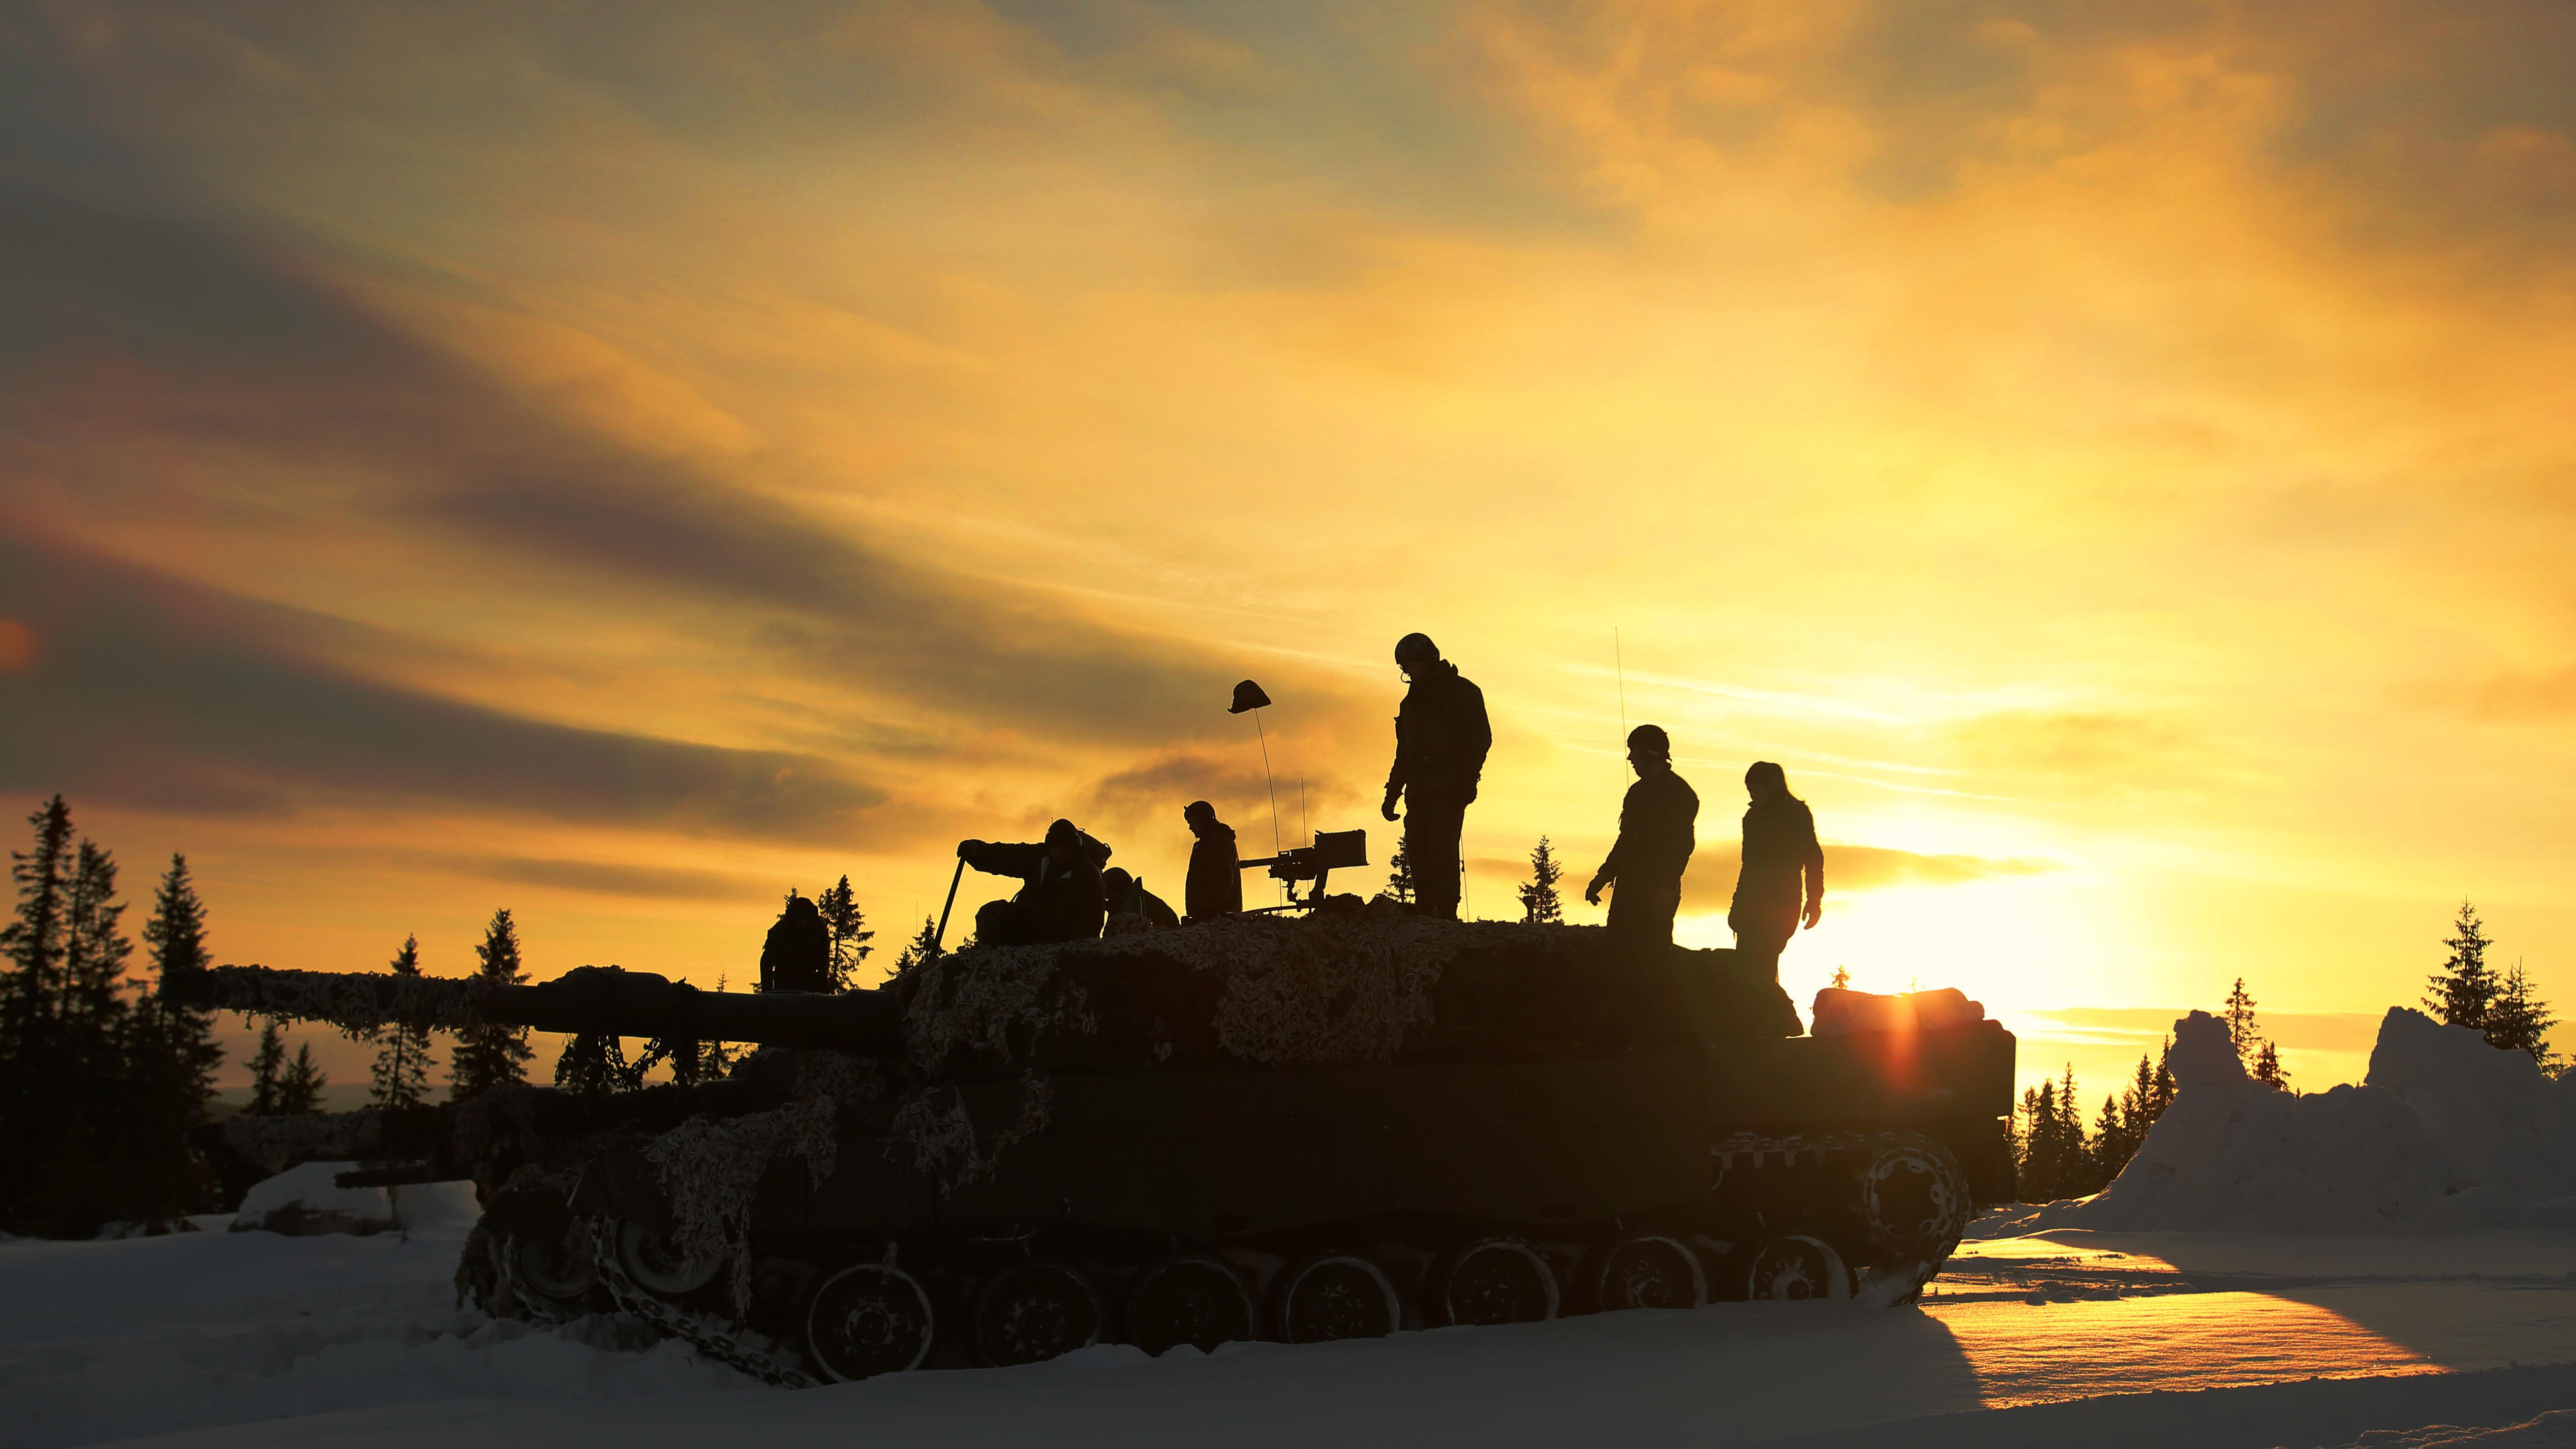 Russia puzzled at Norway's decision to allow stationing of U.S. troops in 2017